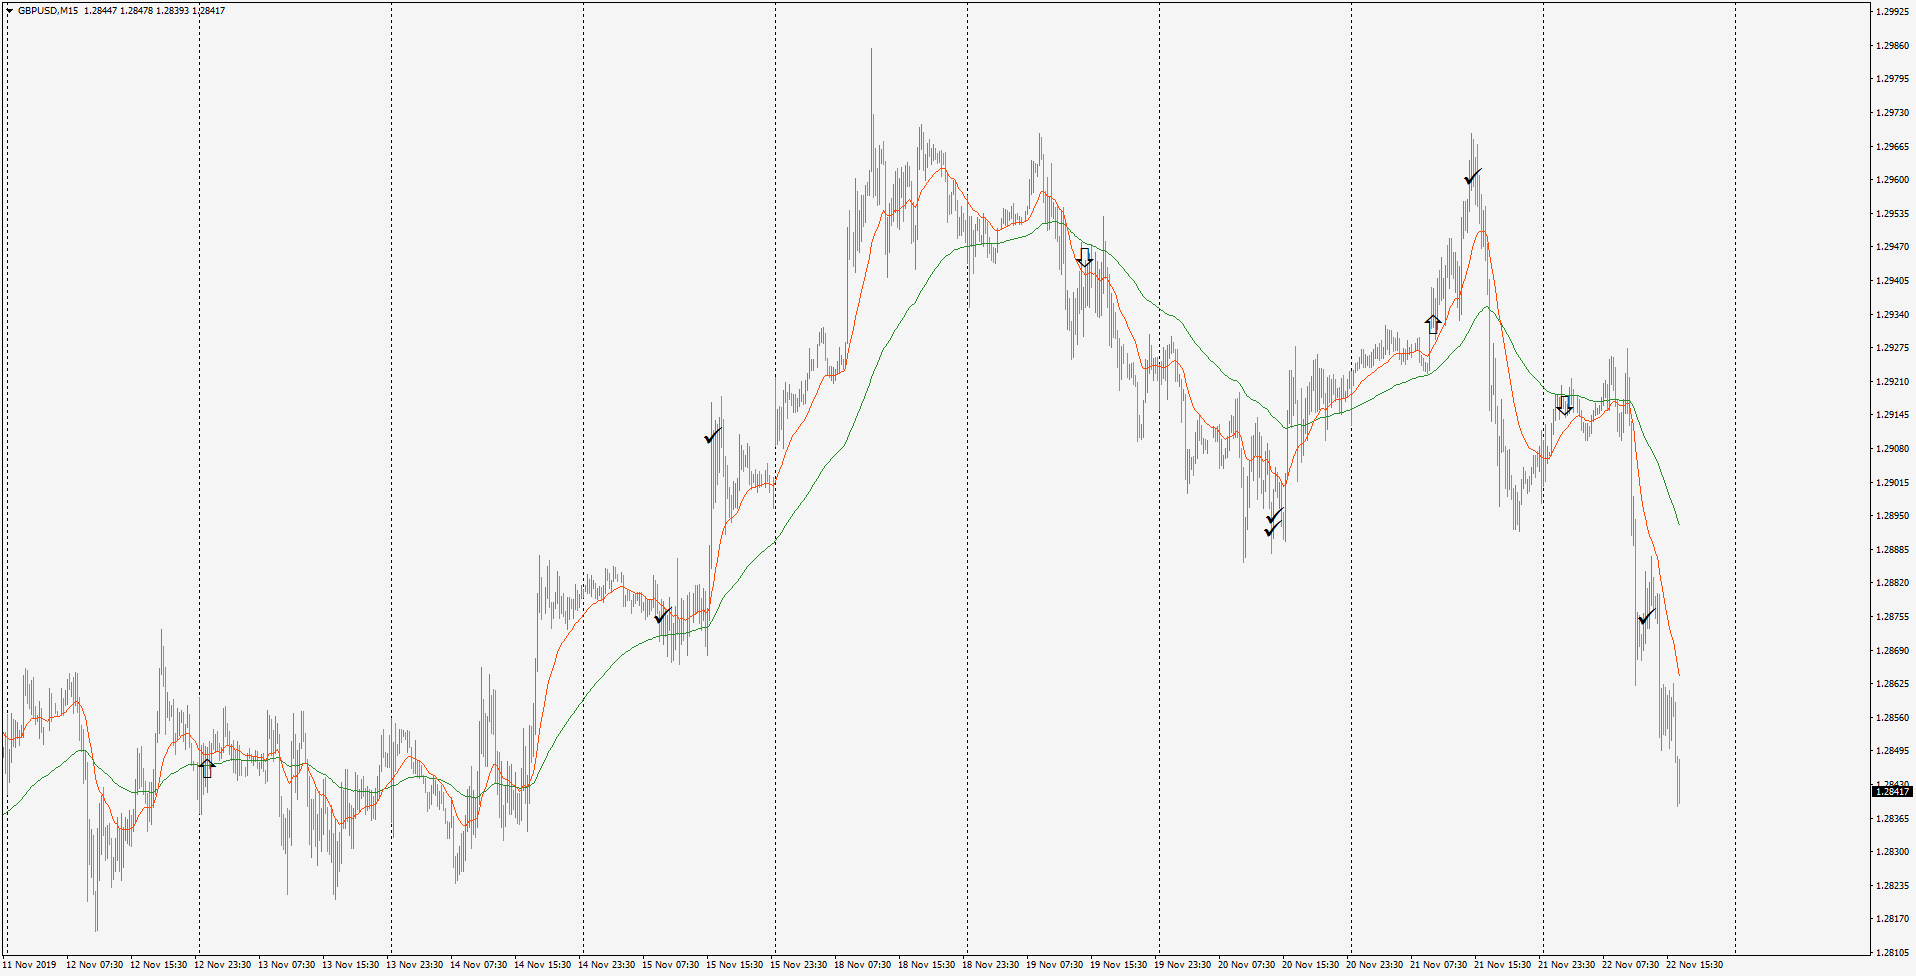 19-11-23-gbpusd-m15-tradexfin-limited.png